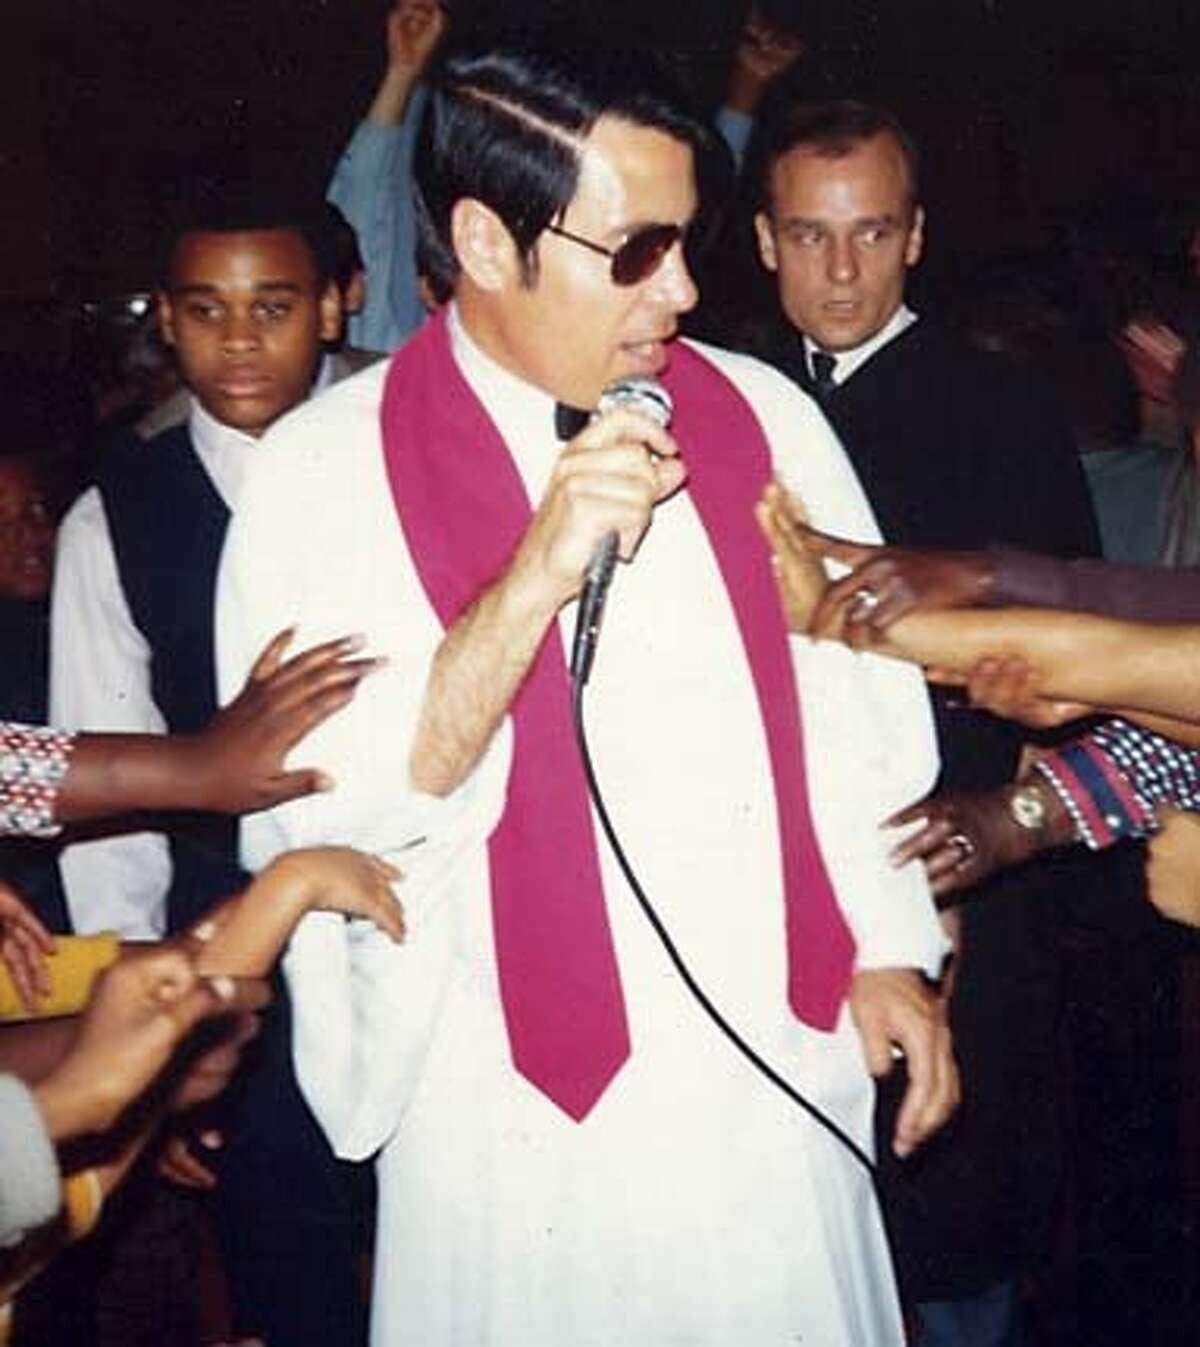 Jim Jones built a cult that was annihilated in a mass murder-suicide in the Guyana jungle in 1978.